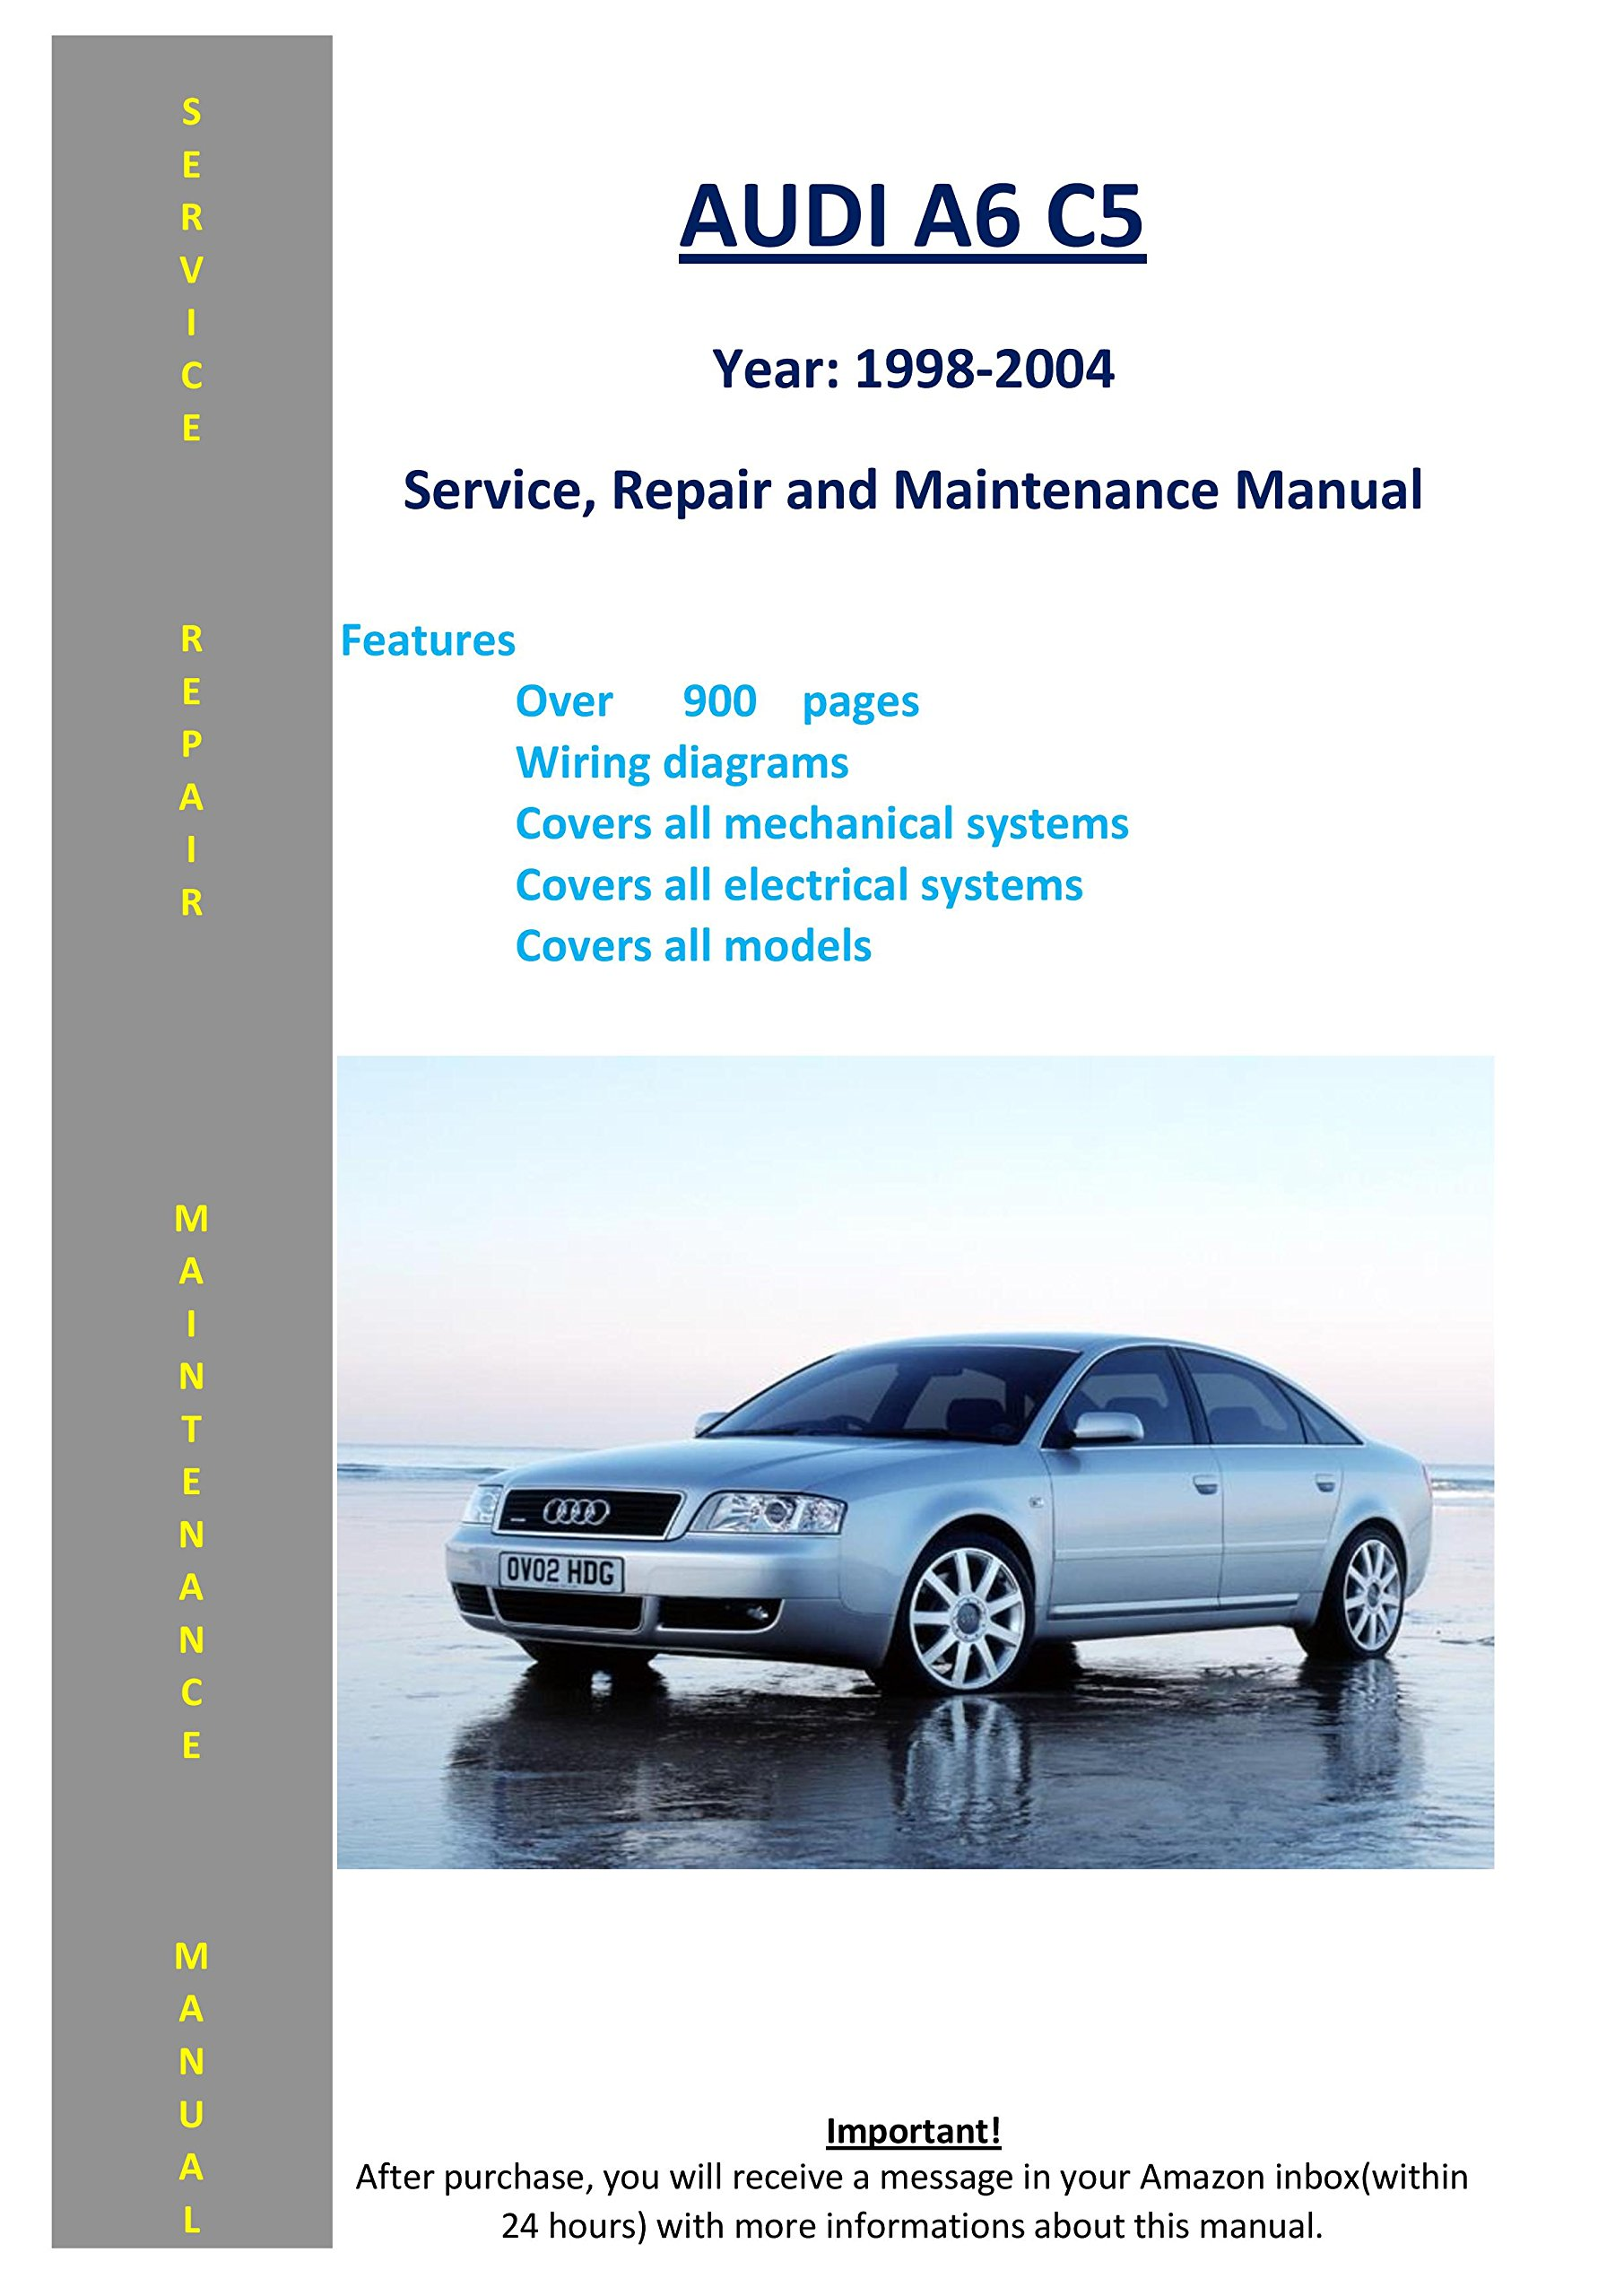 Audi A6 C5 From 1998 - 2004 Service Repair Maintenance Manual: SoftAuto  Manuals: 5002992900875: Amazon.com: Books